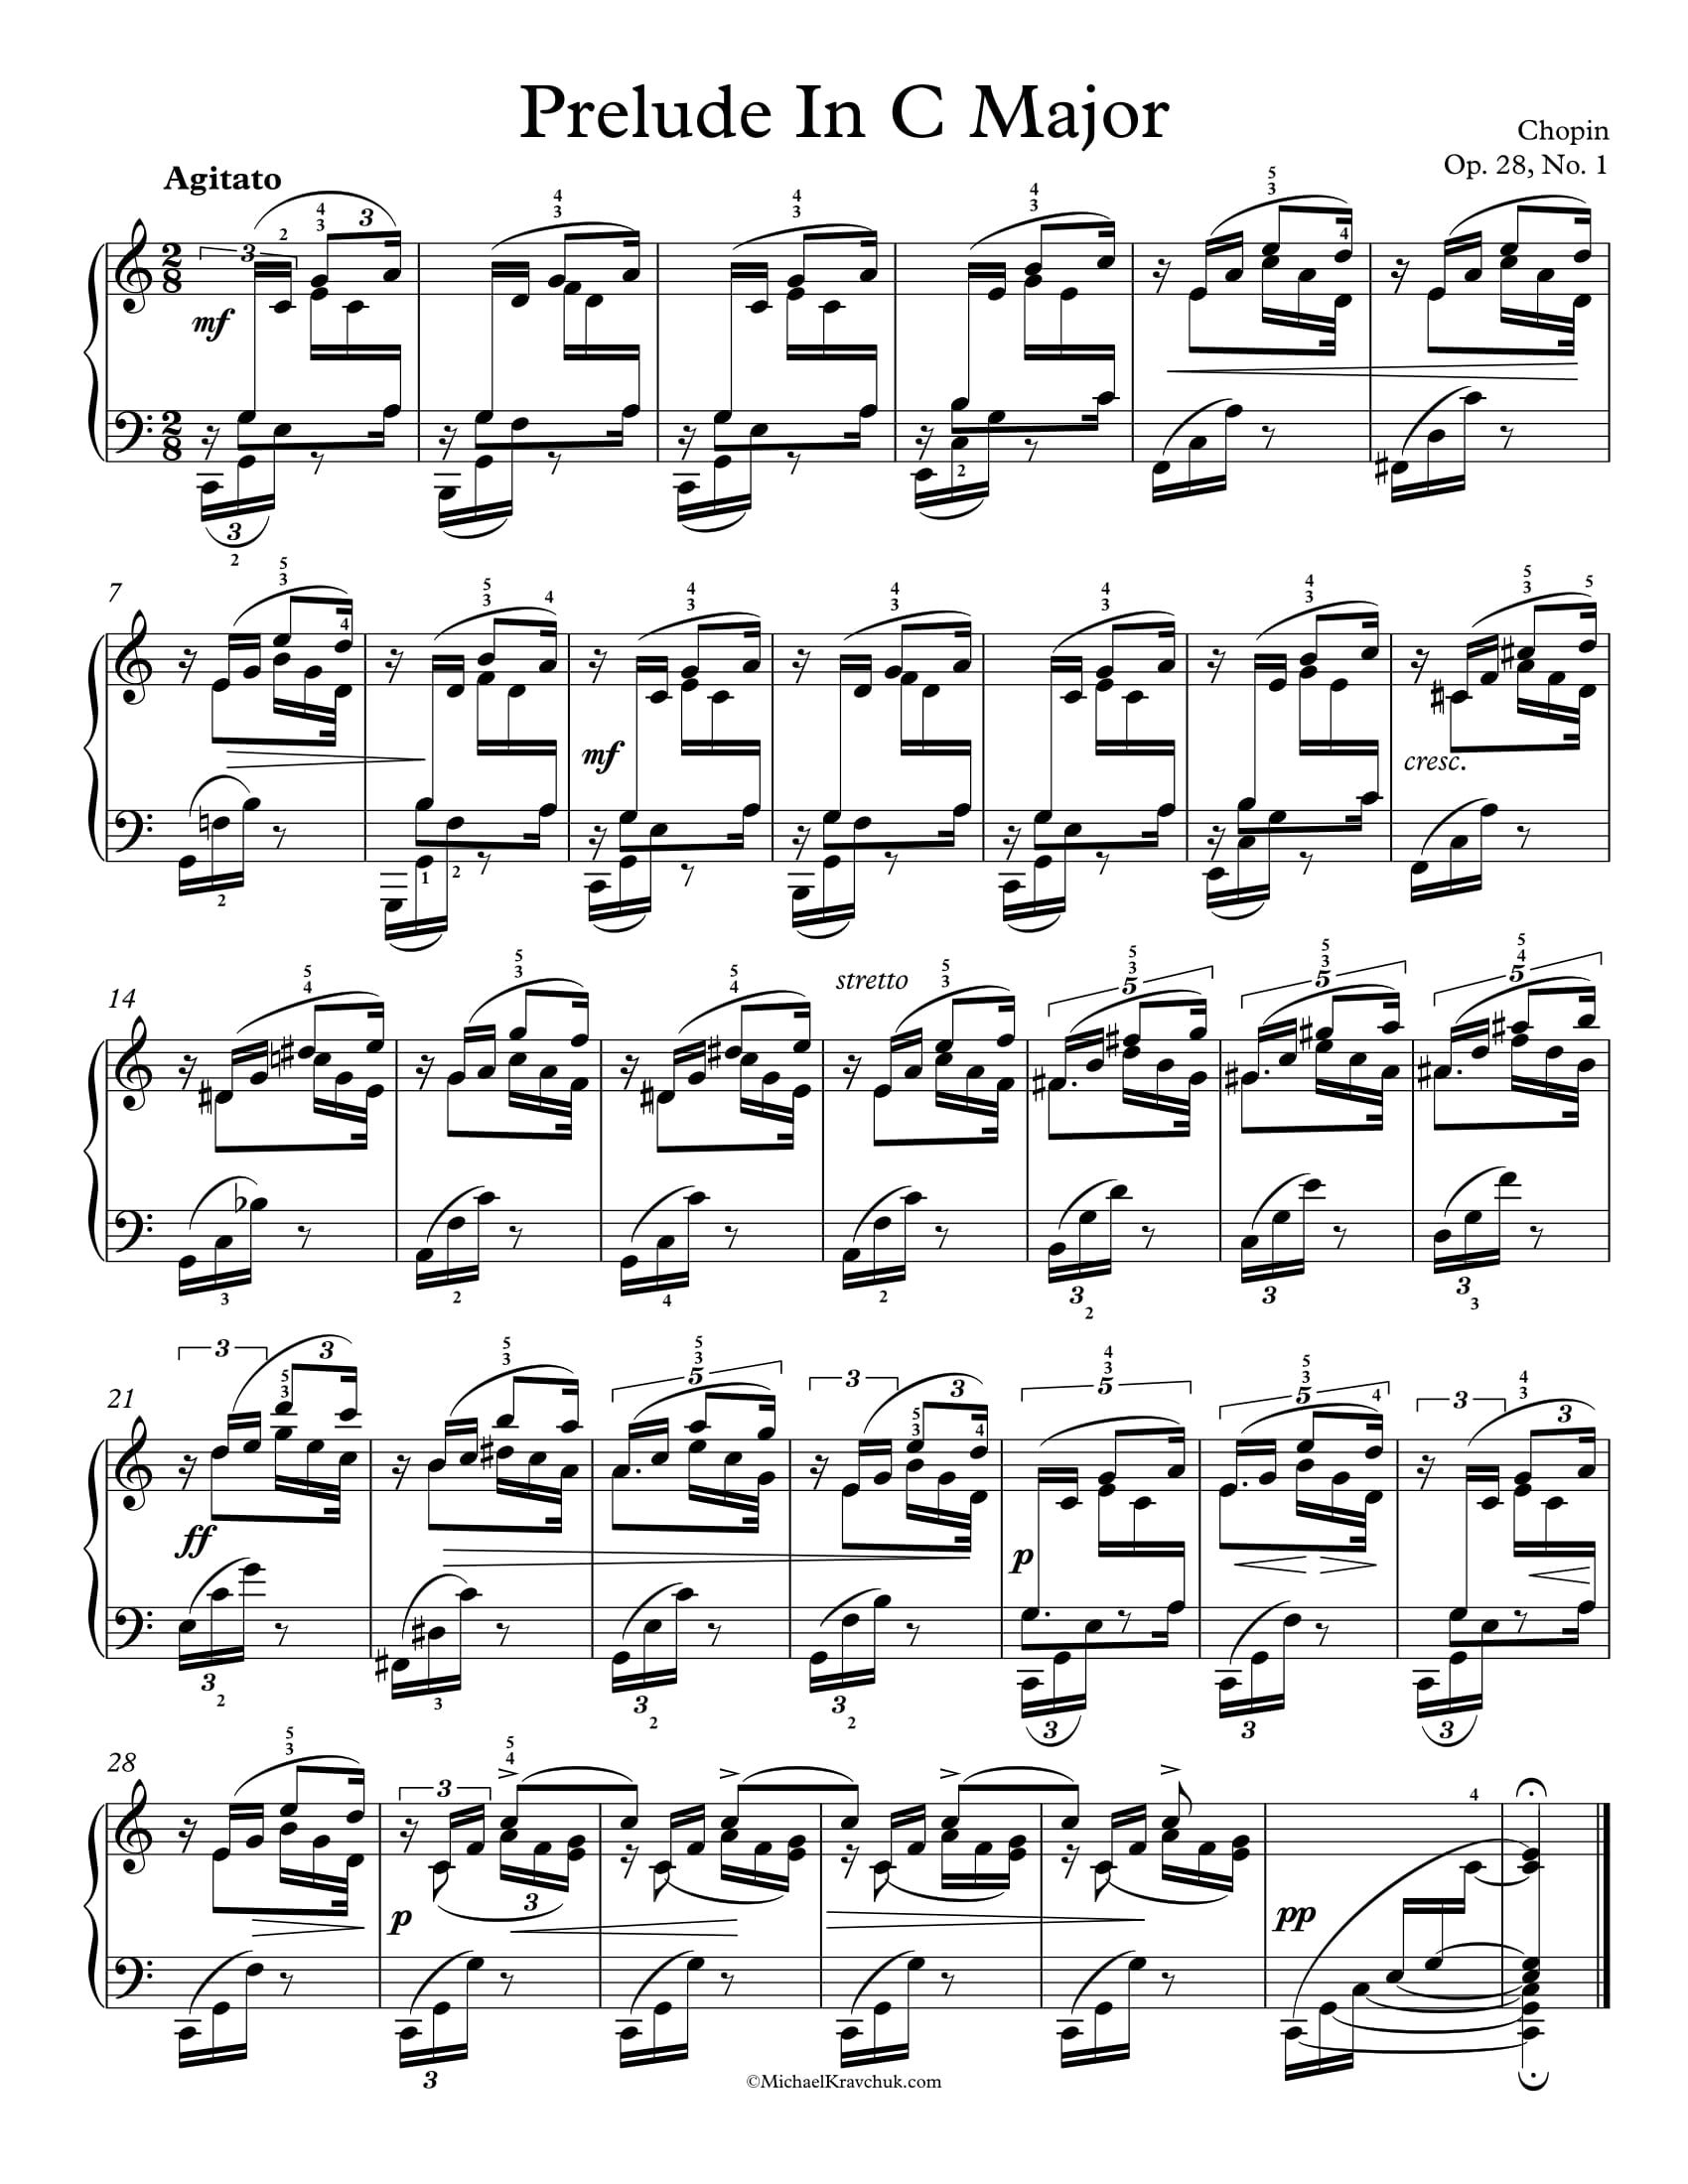 Free Piano Sheet Music Plelude In C Major Op 28 No 1